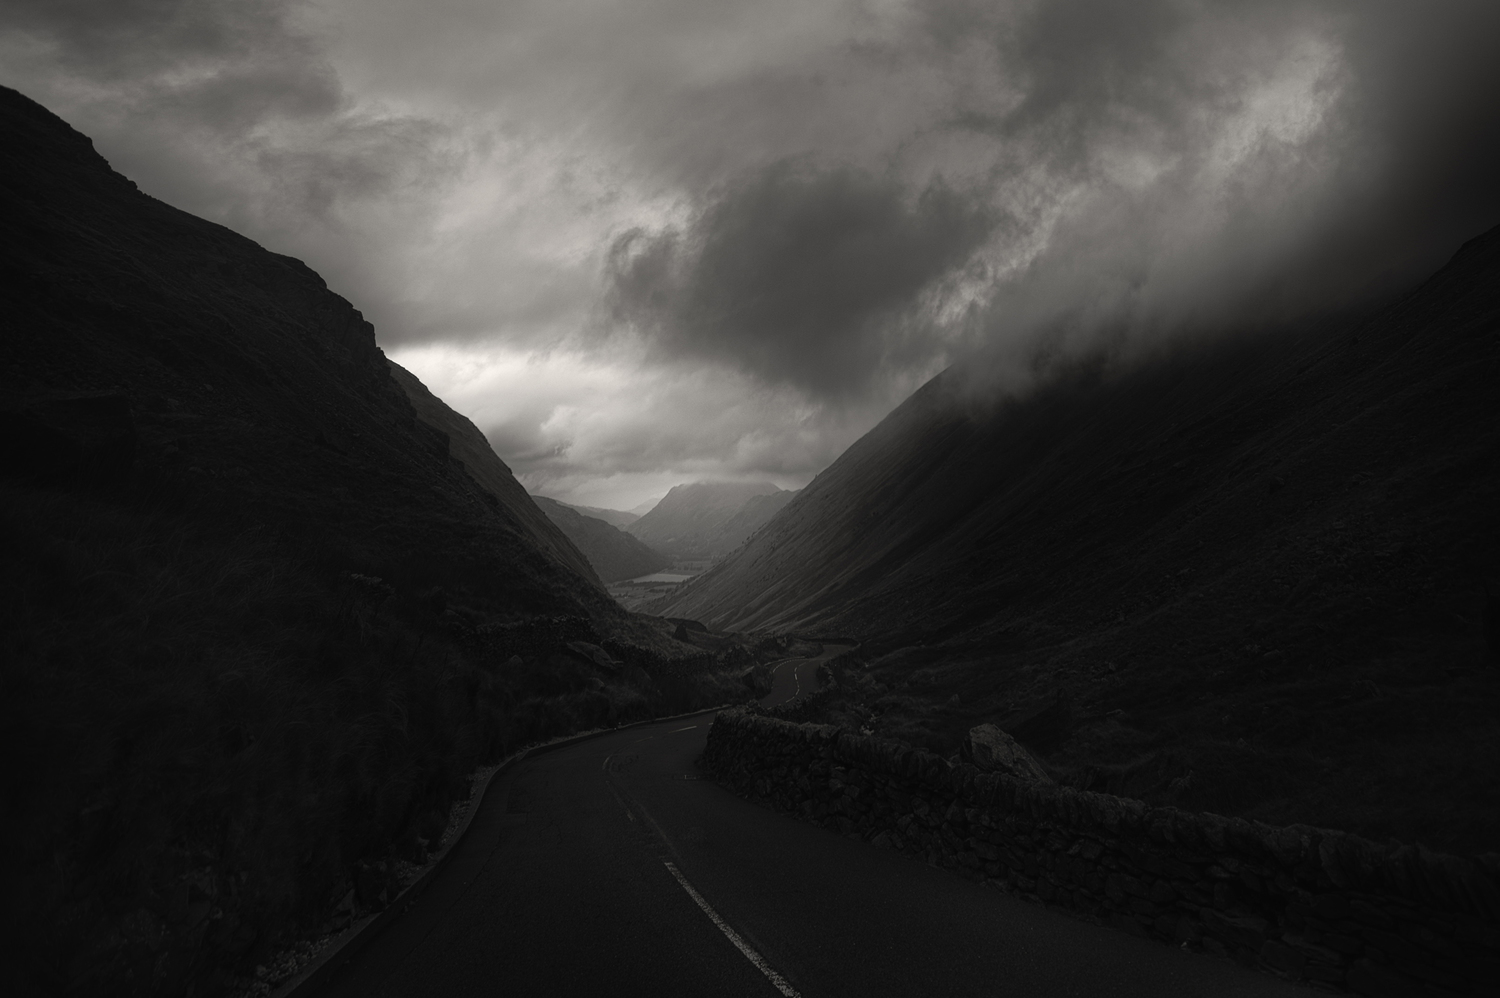 Roads_LakeDistrict_AndyLee©2015